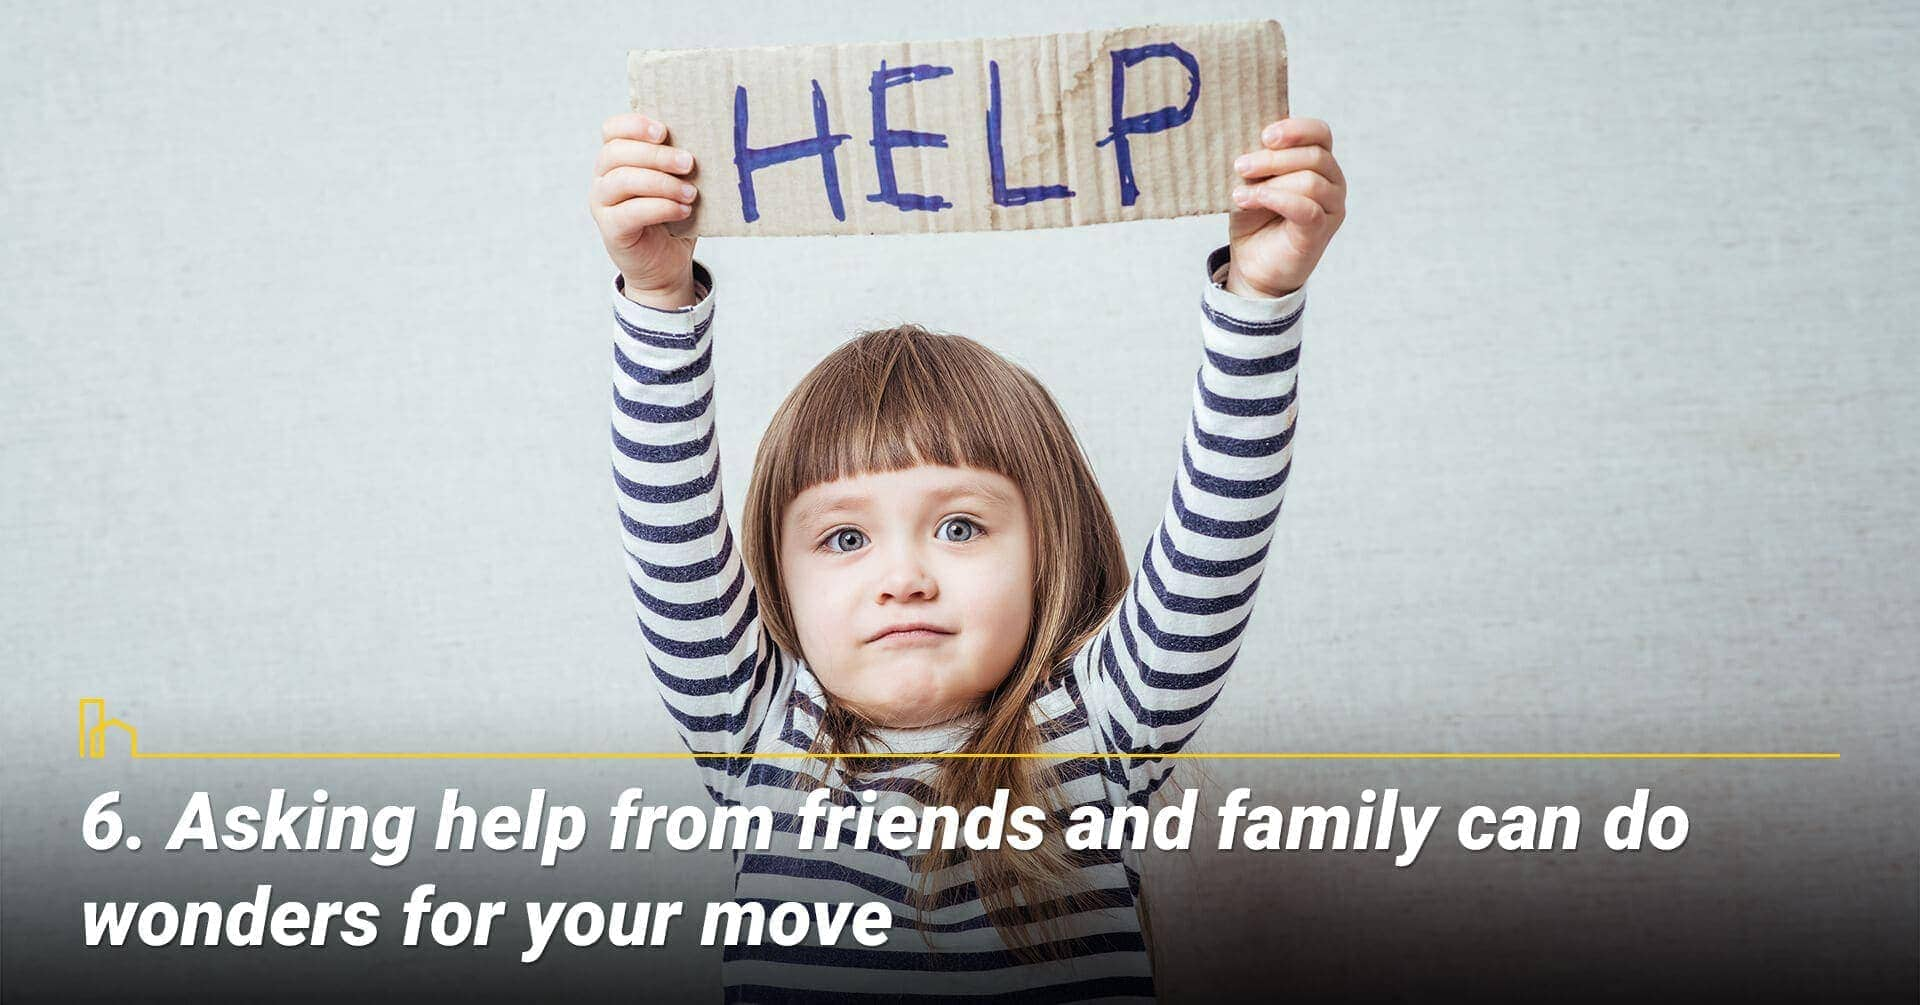 Asking help from friends and family can do wonders for your move